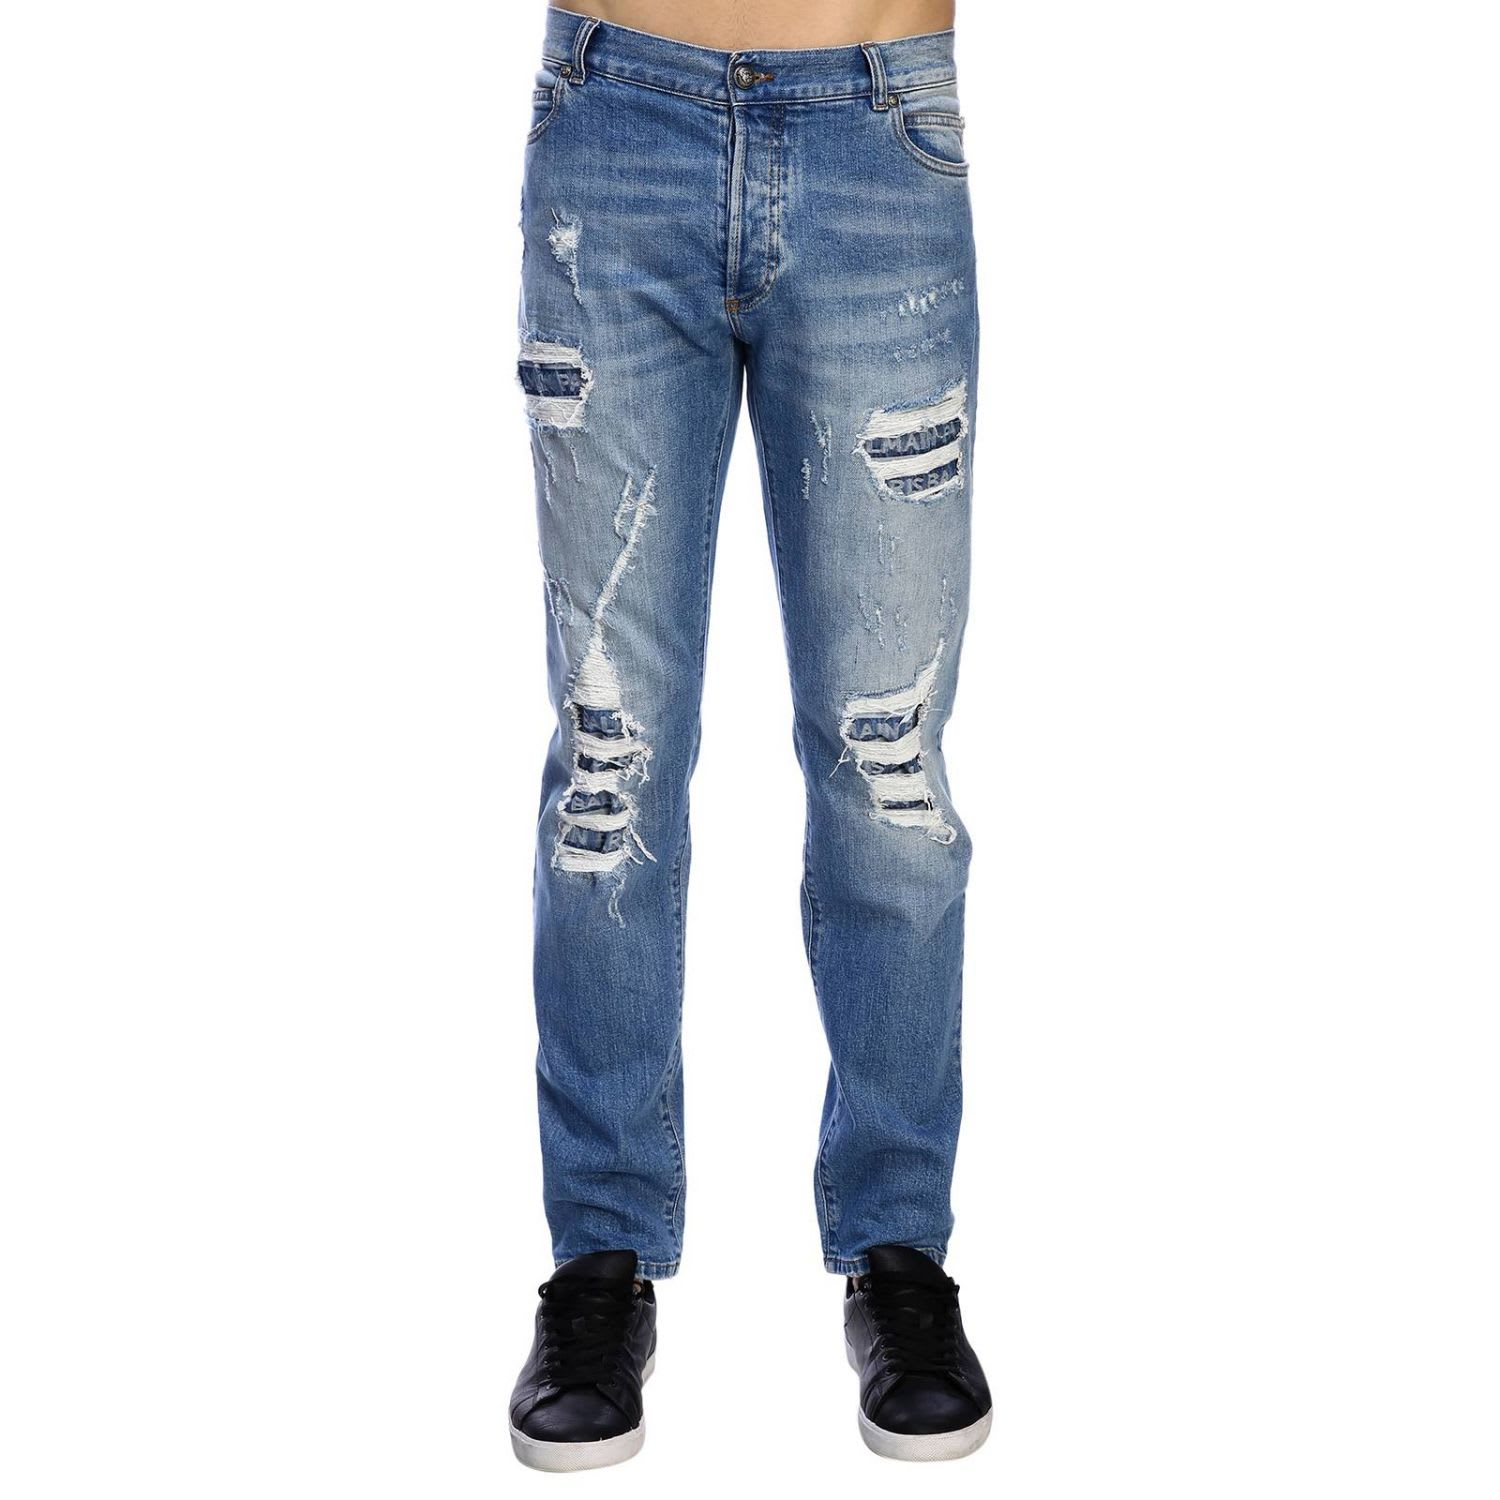 Balmain Jeans Balmain Slim Fit Jeans In Used Effect Denim With Maxi Breaks And Logoed Patches